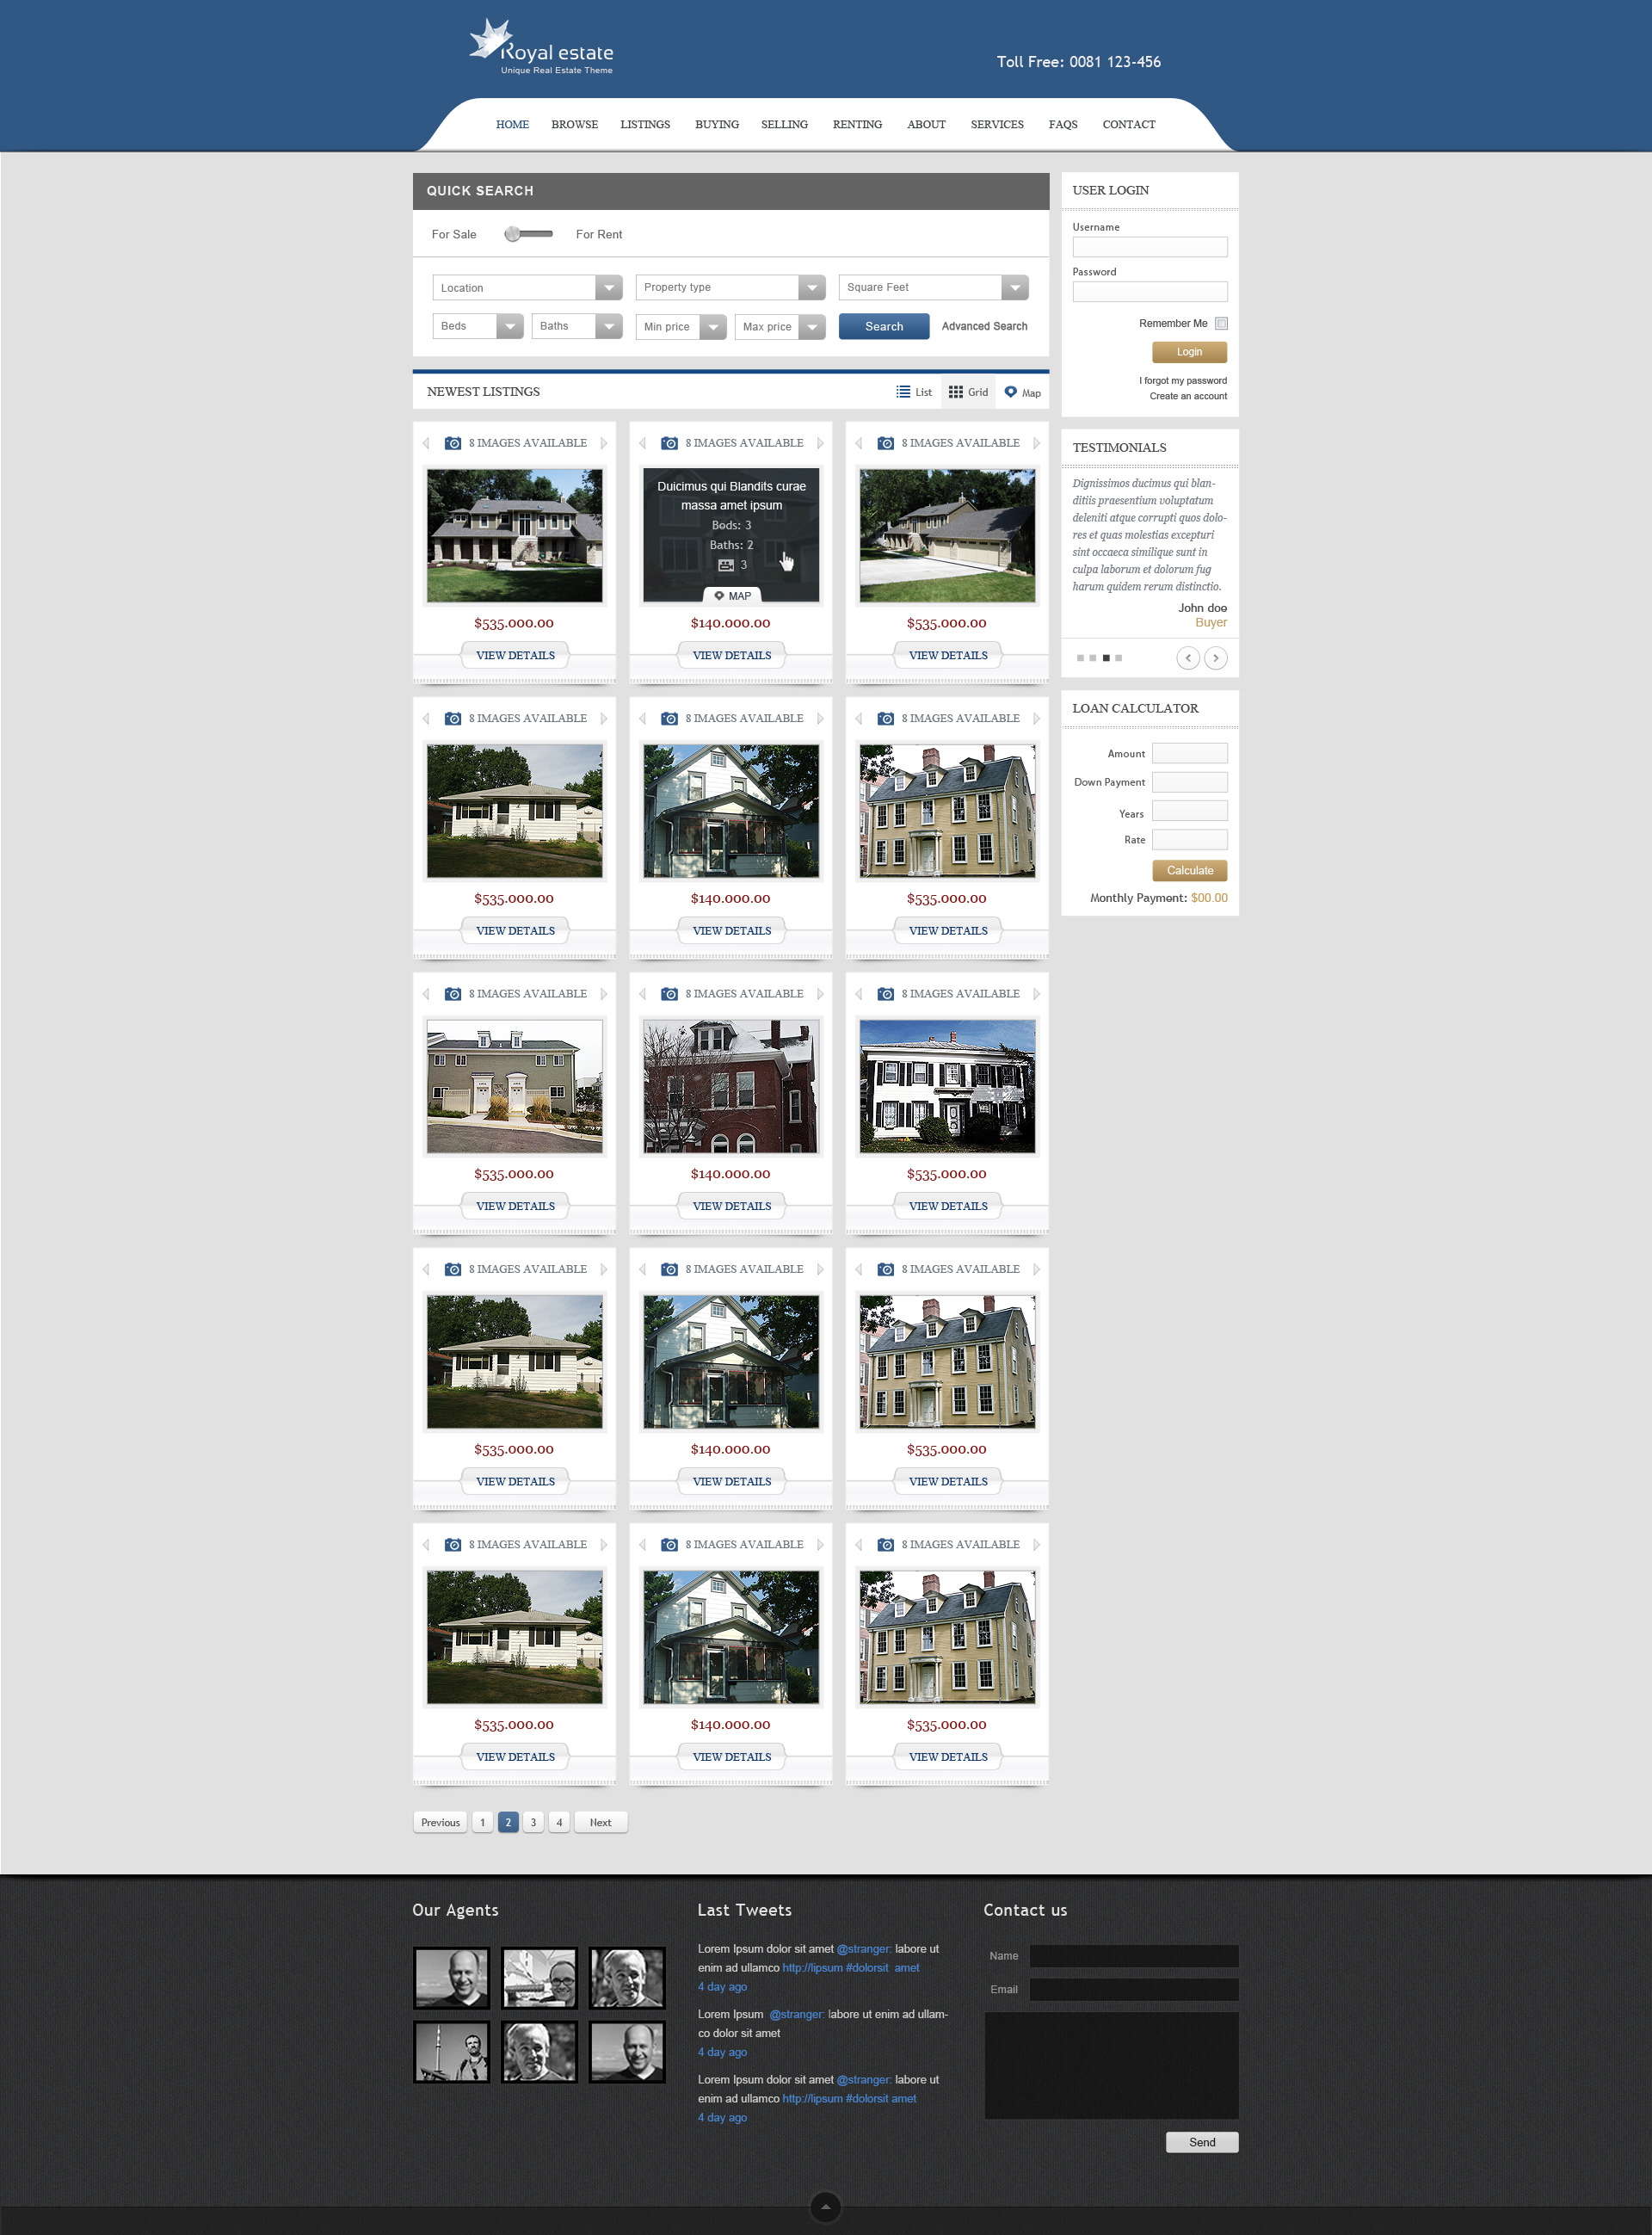 Royal Estate - Premium Real Estate Theme